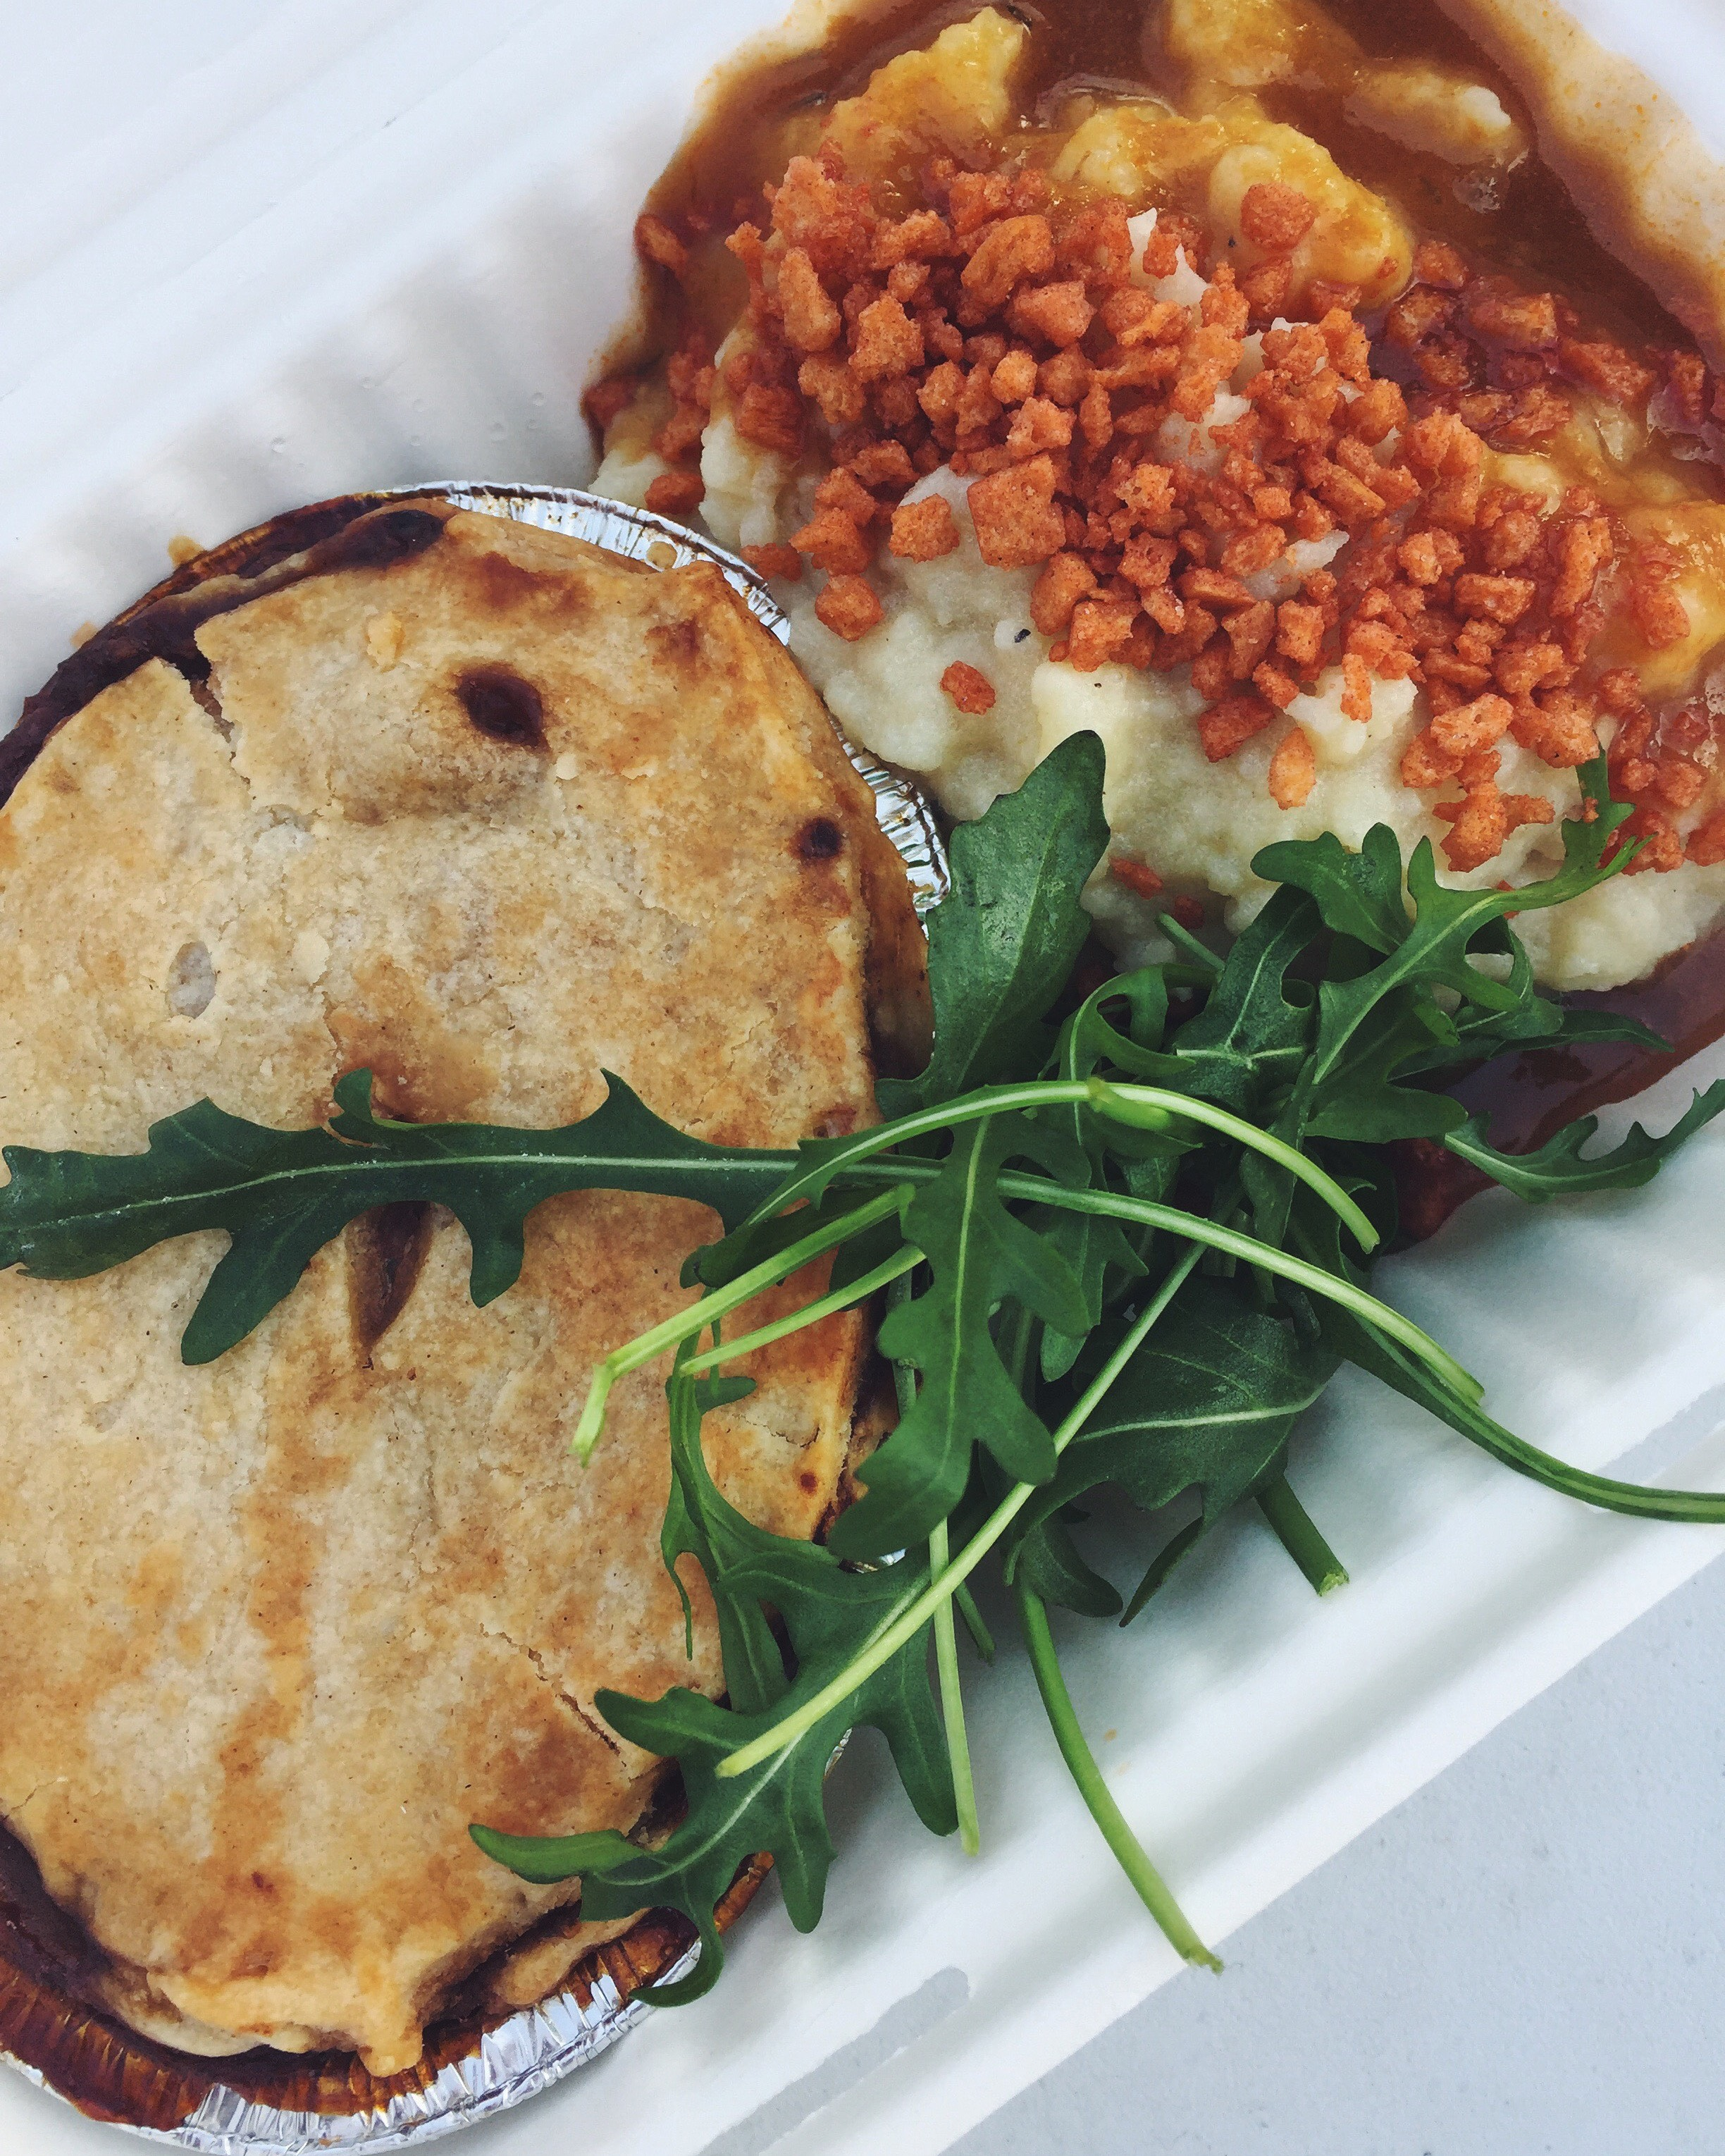 Oh and Young Vegans' incredible pie and mash... which is also available at Tottenham Green on Sundays when the Farmers Market is on!